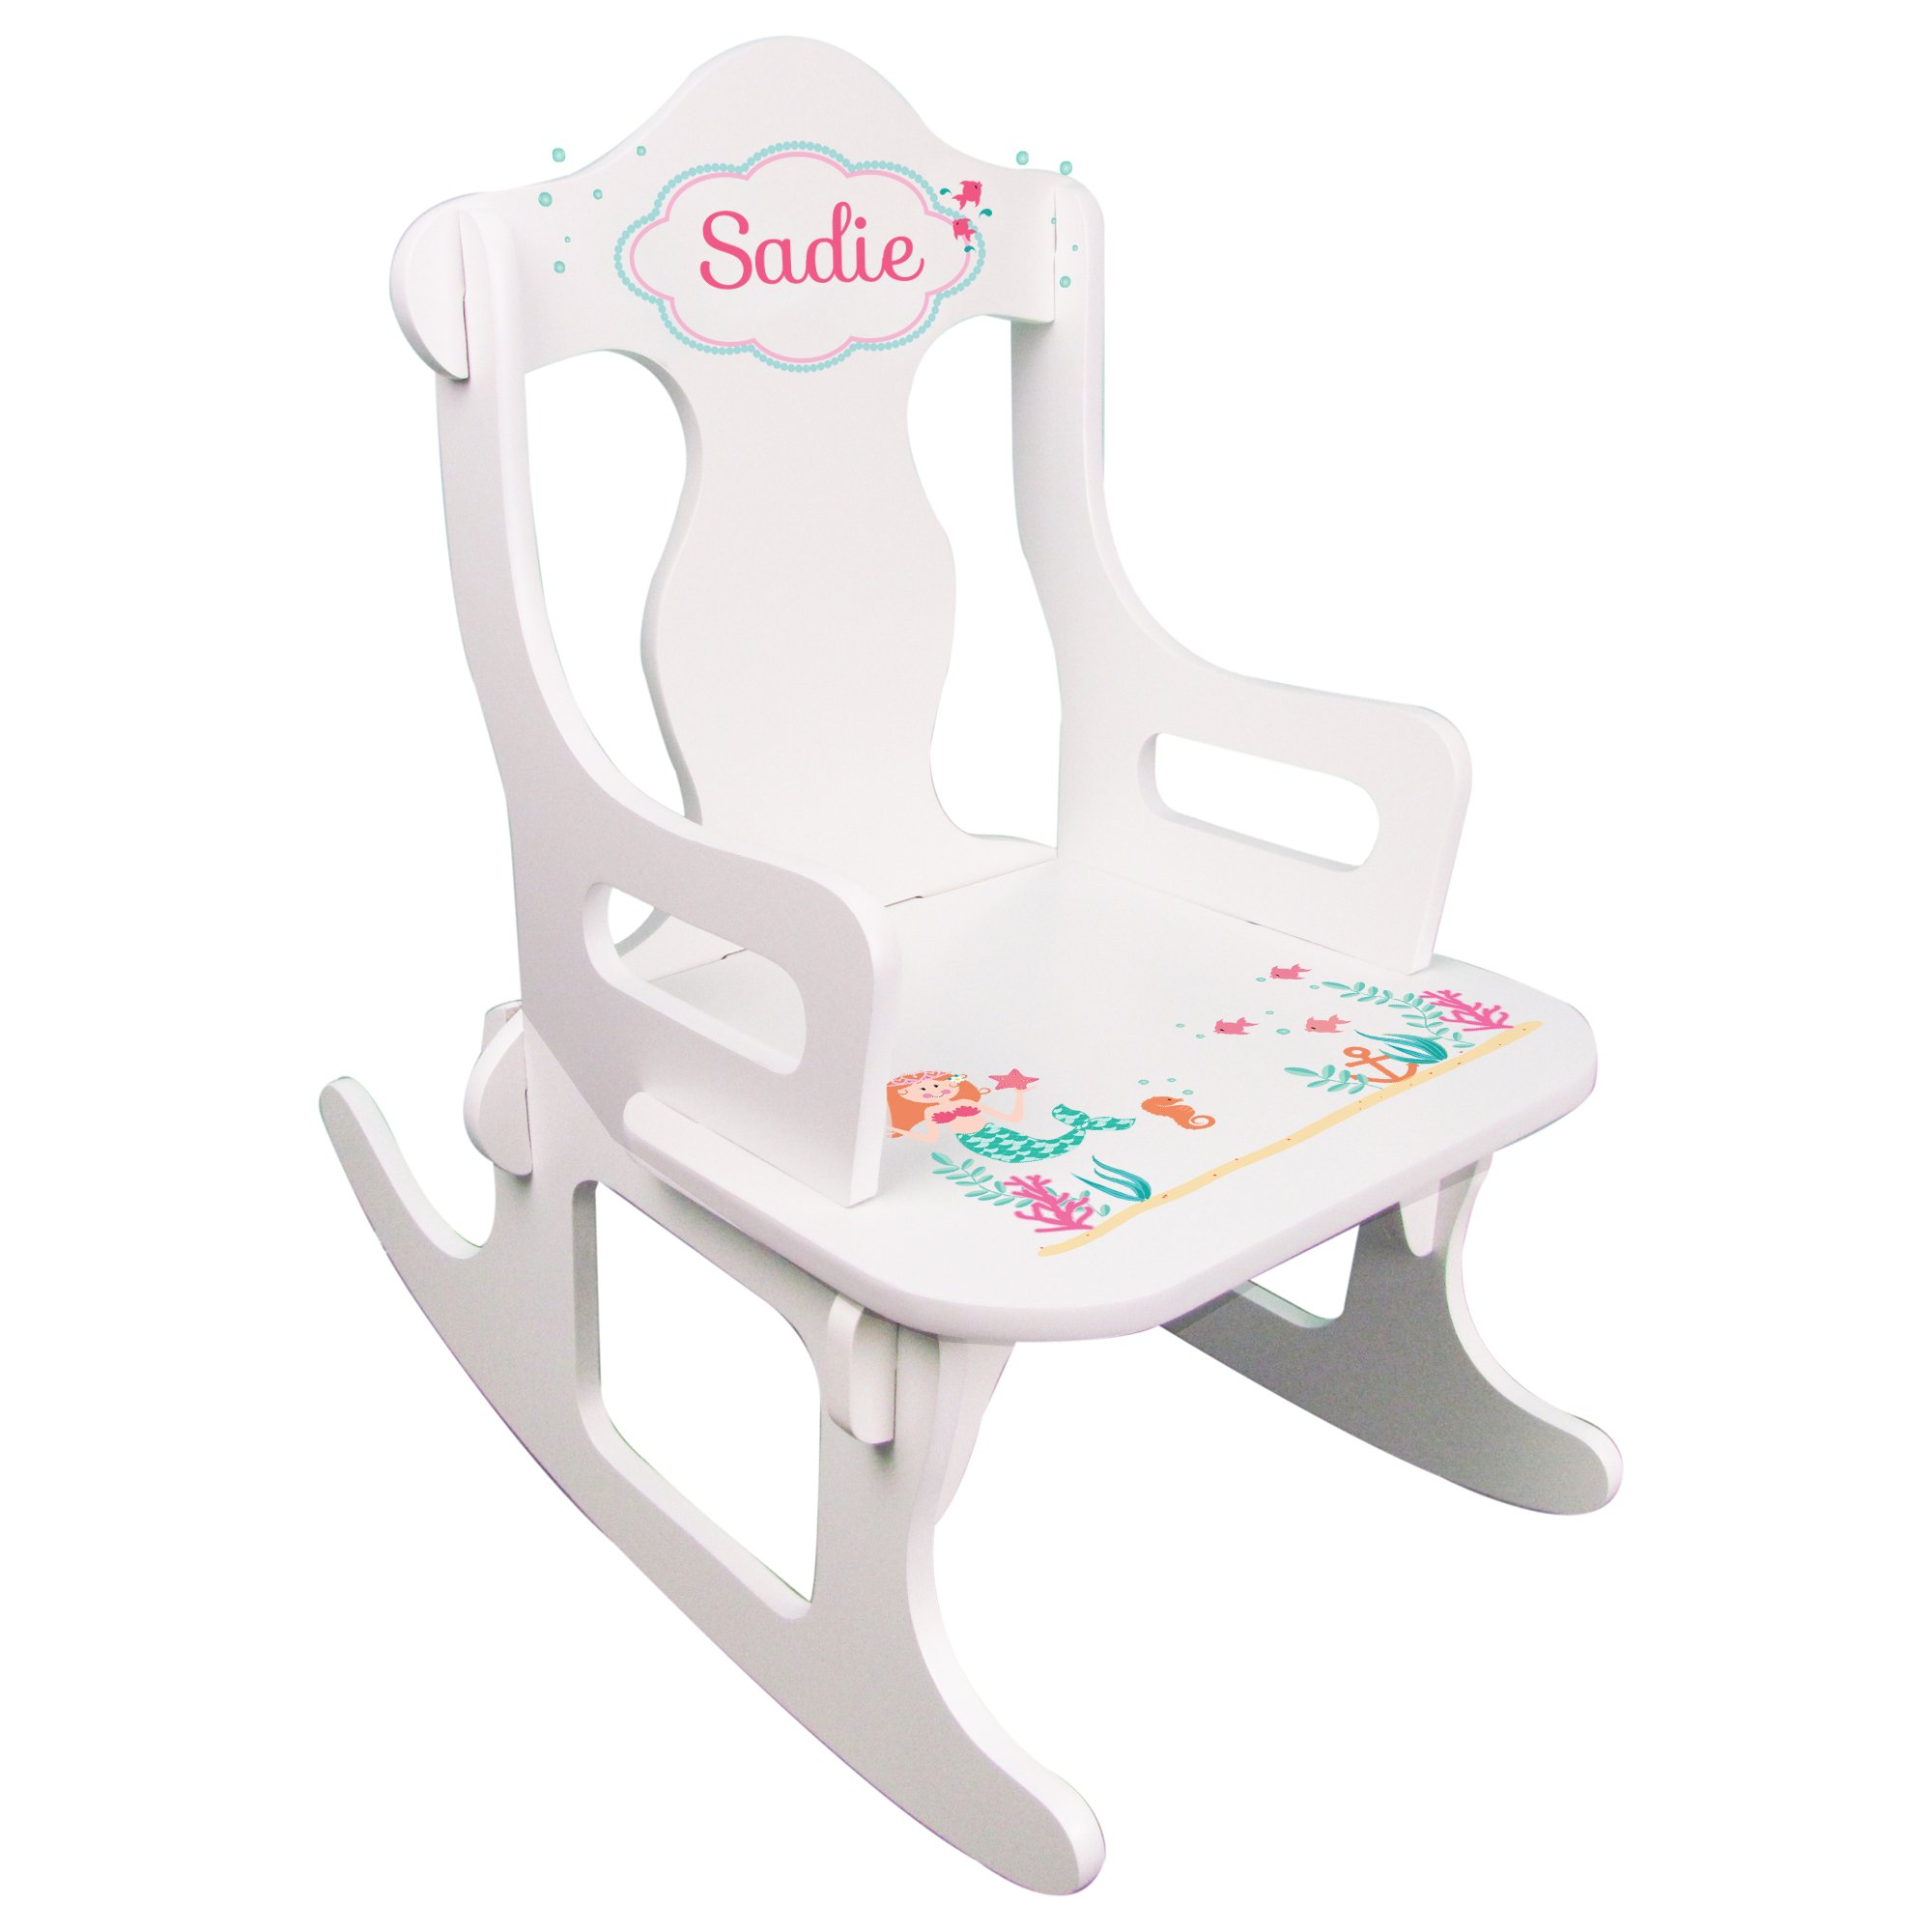 Personalized Child's Mermaid Puzzle Rocking Chair by MyBambino